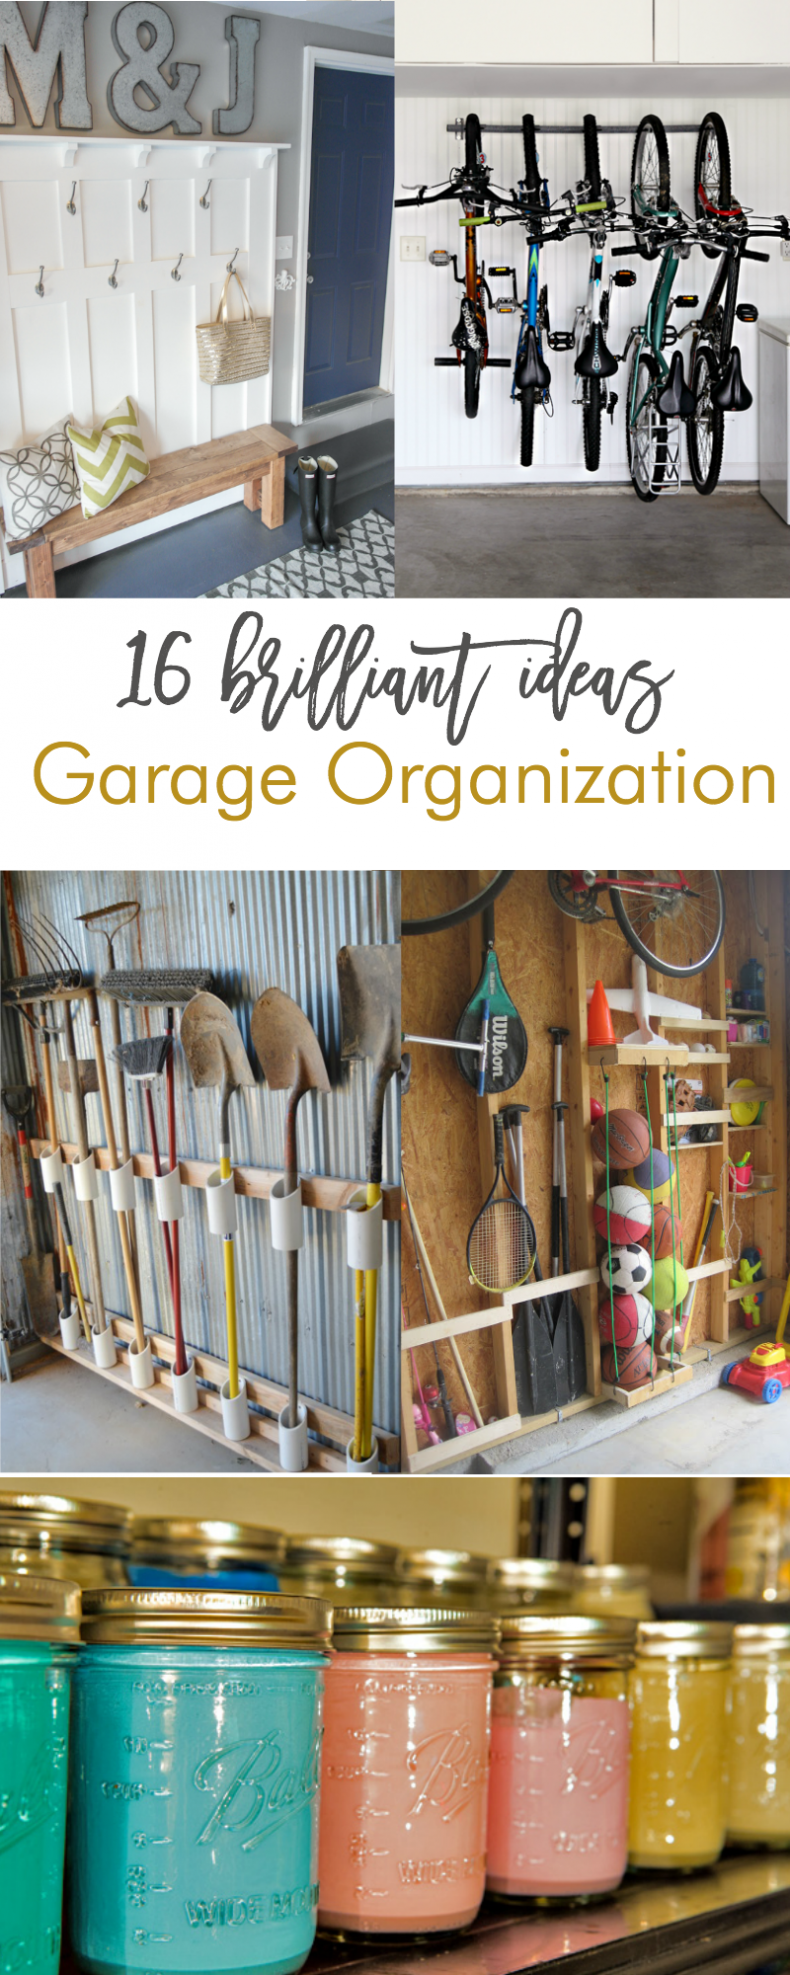 Galvanized Walls with PVC Pipe Tool Storage & 16 Brilliant DIY Garage Organization Ideas